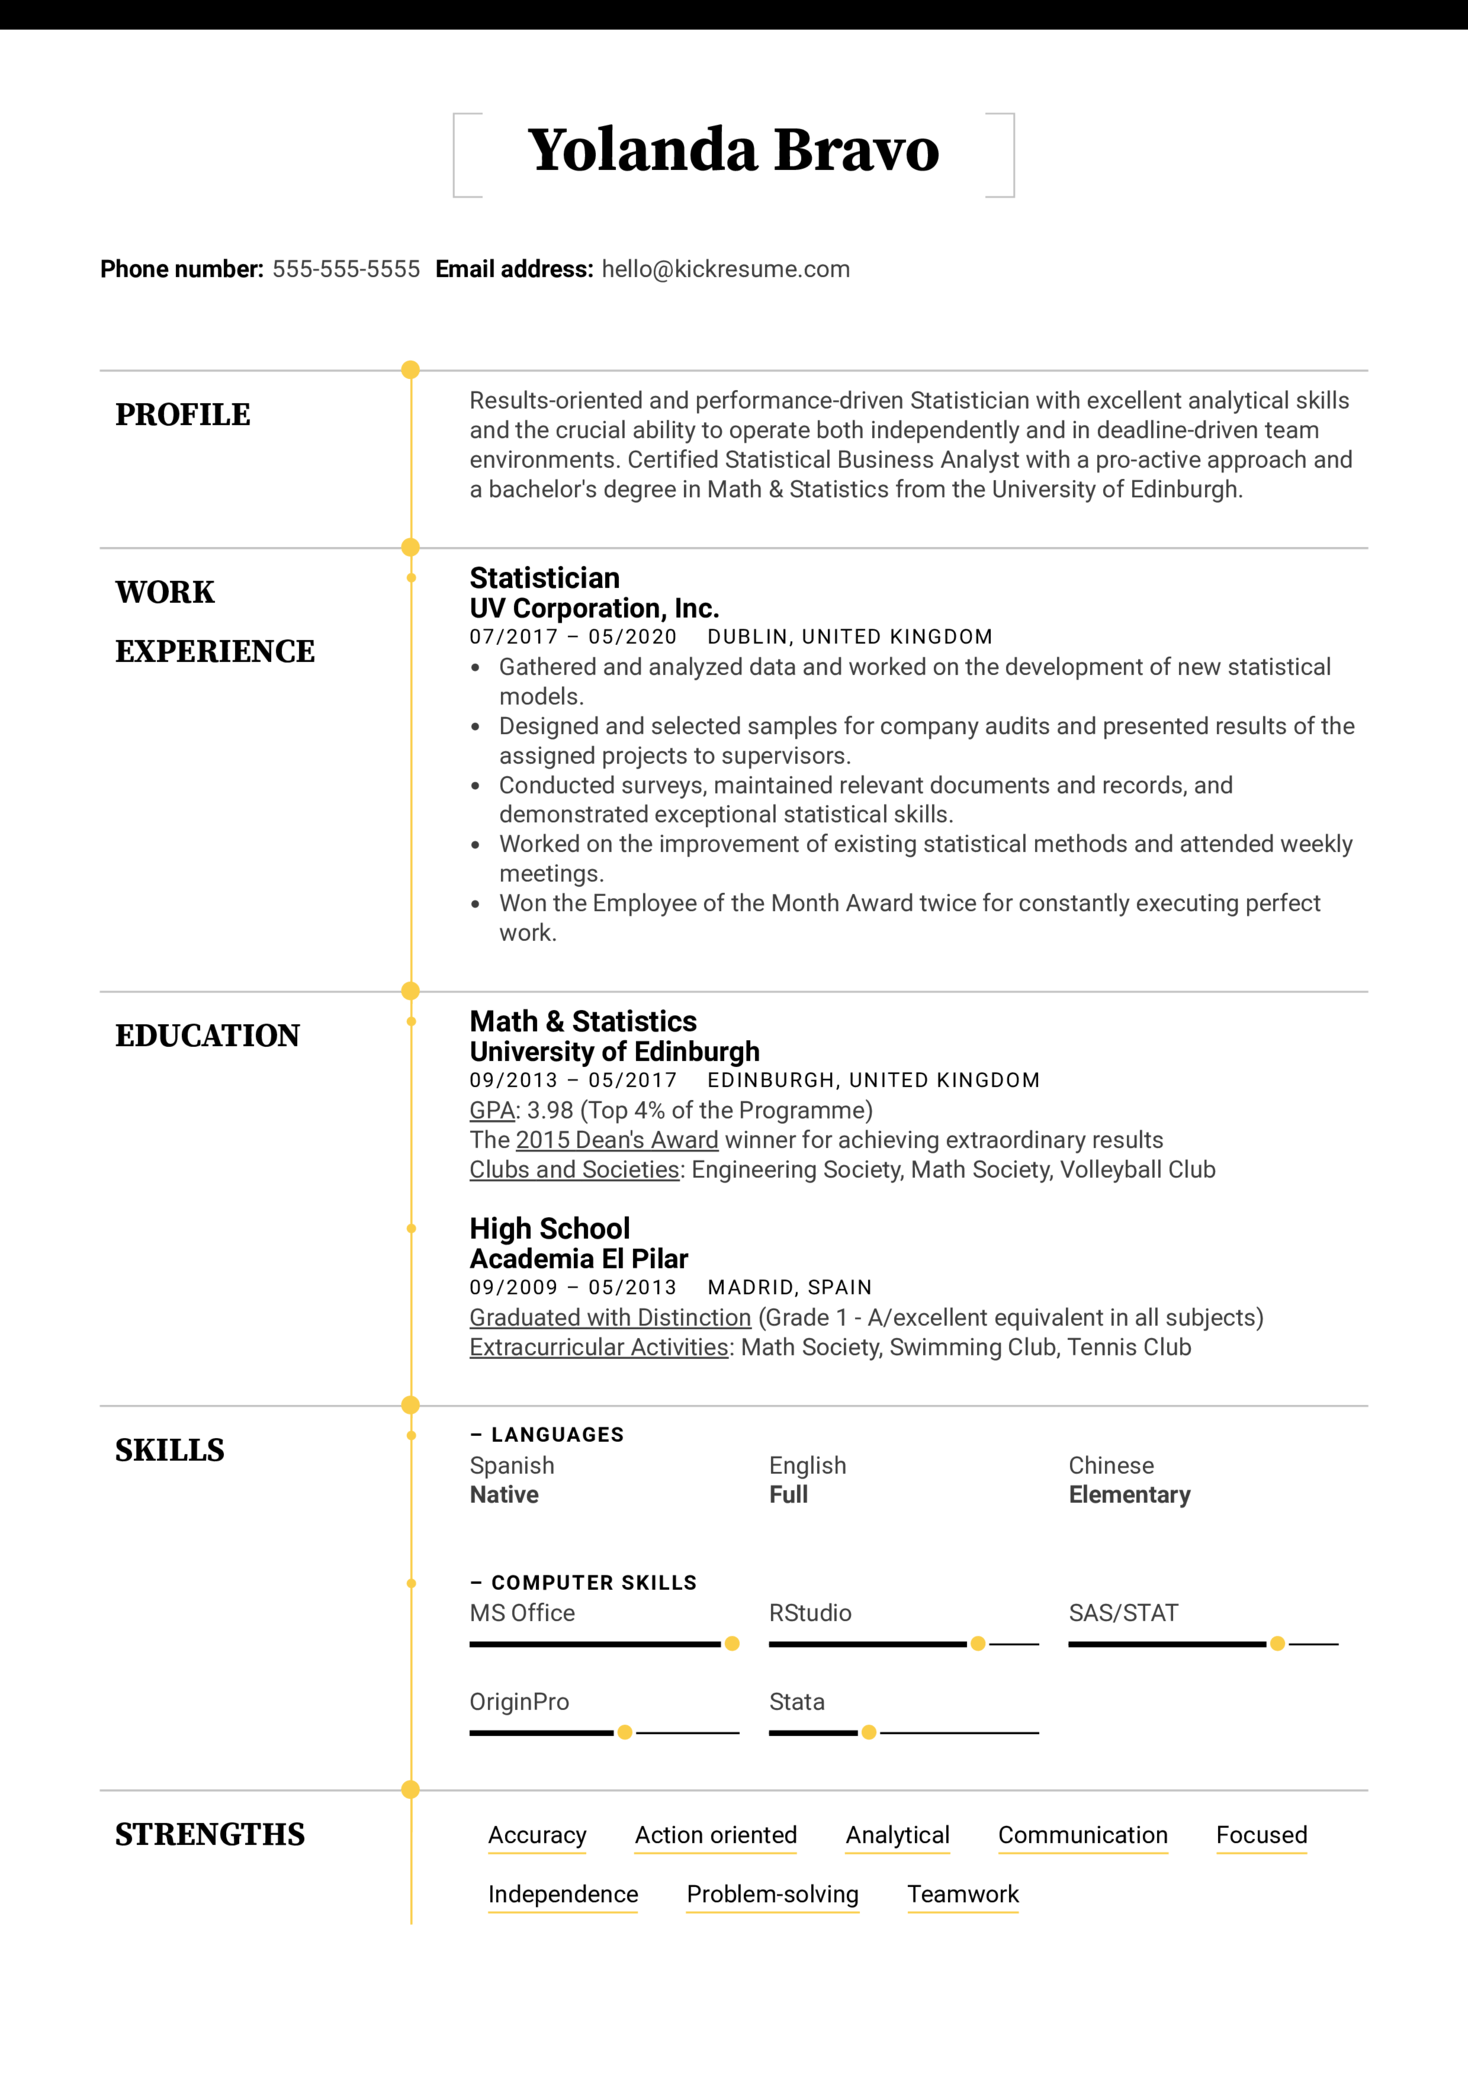 Statistician Resume Example (Parte 1)